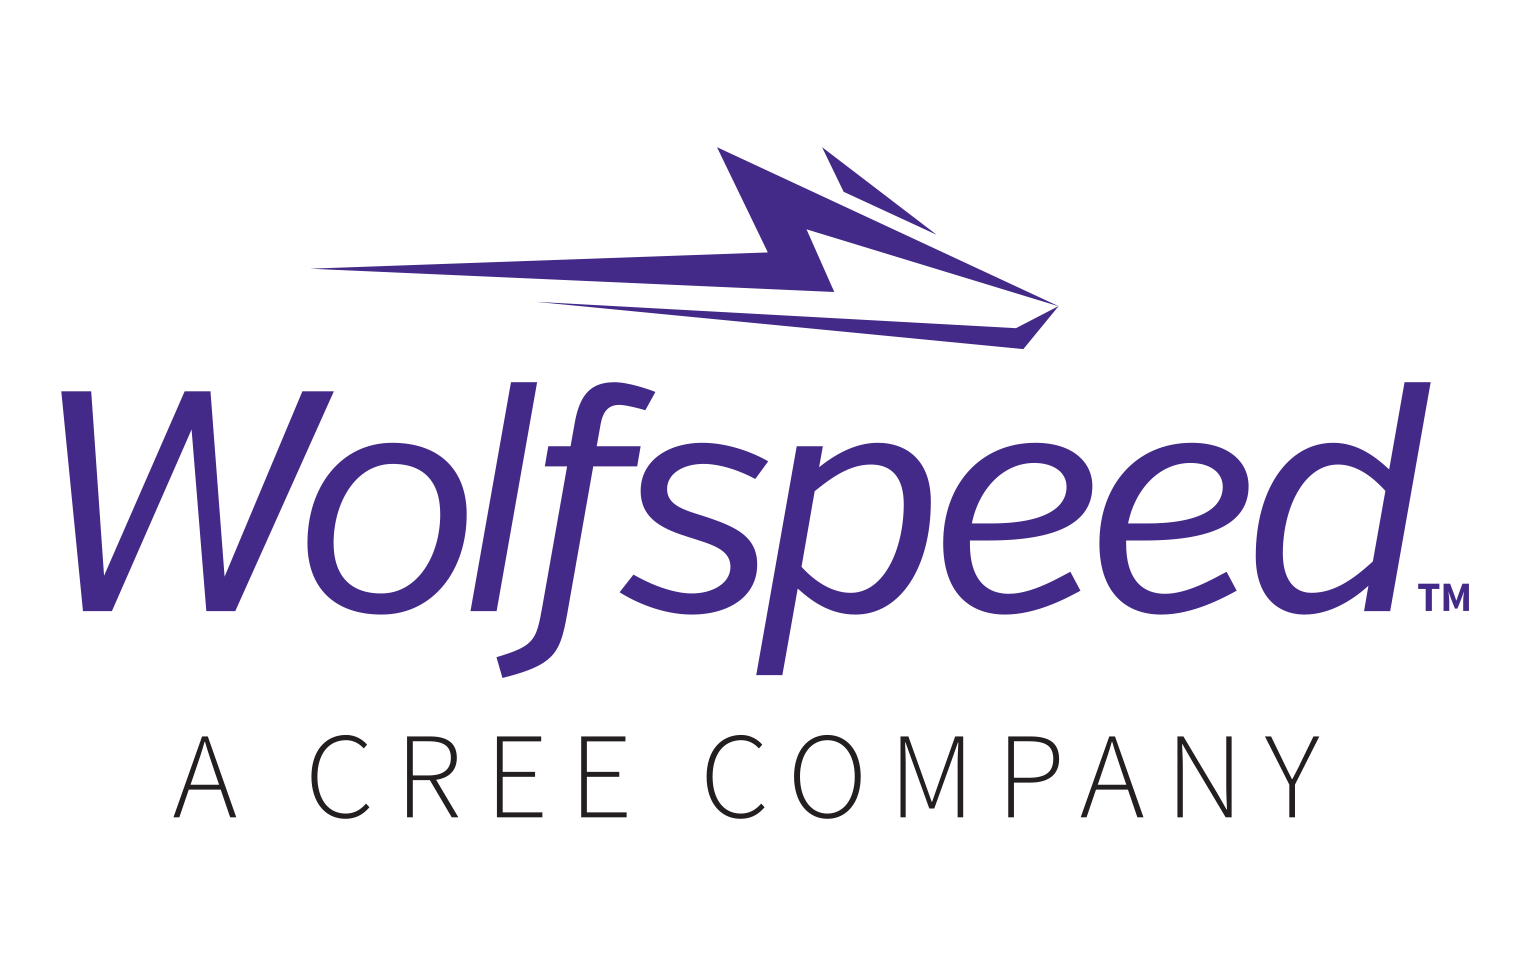 Wolfspeed Launch New 35 W, 9.0 - 11.0 GHz, GaN MMIC Power Amplifier